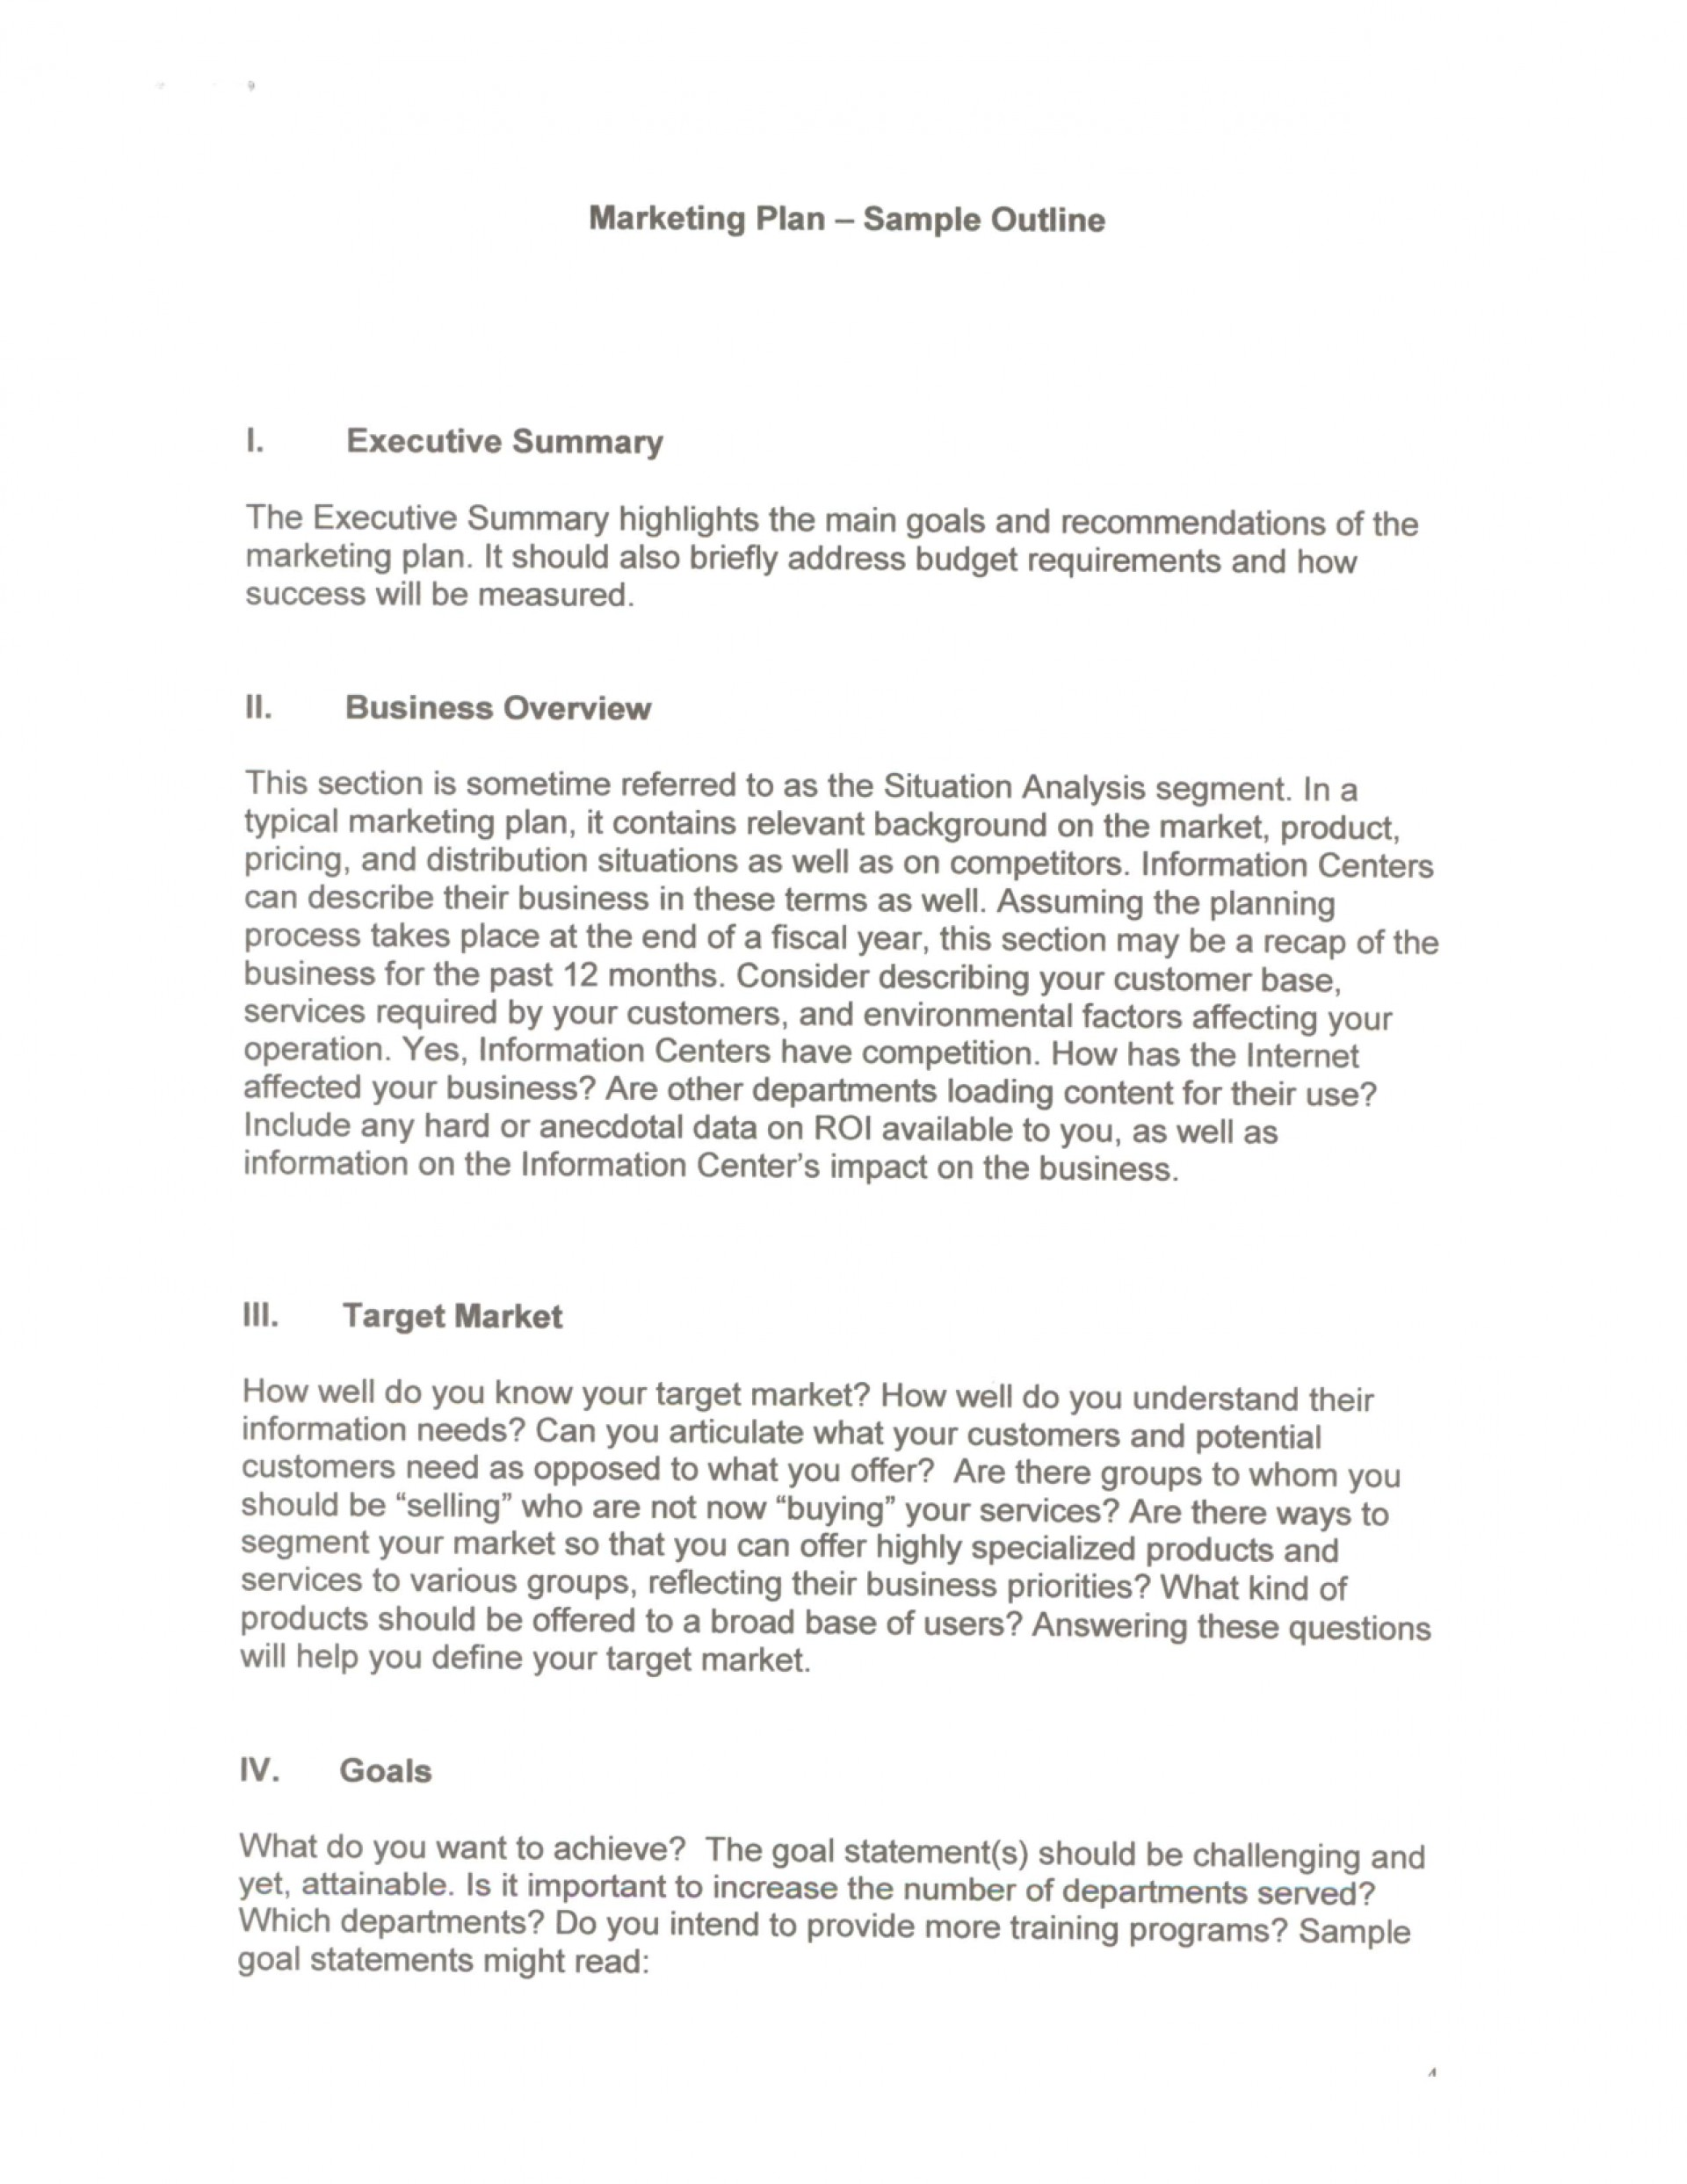 013 Executive Summary Research Paper Example Marketing Plan 384040 Unforgettable 1920